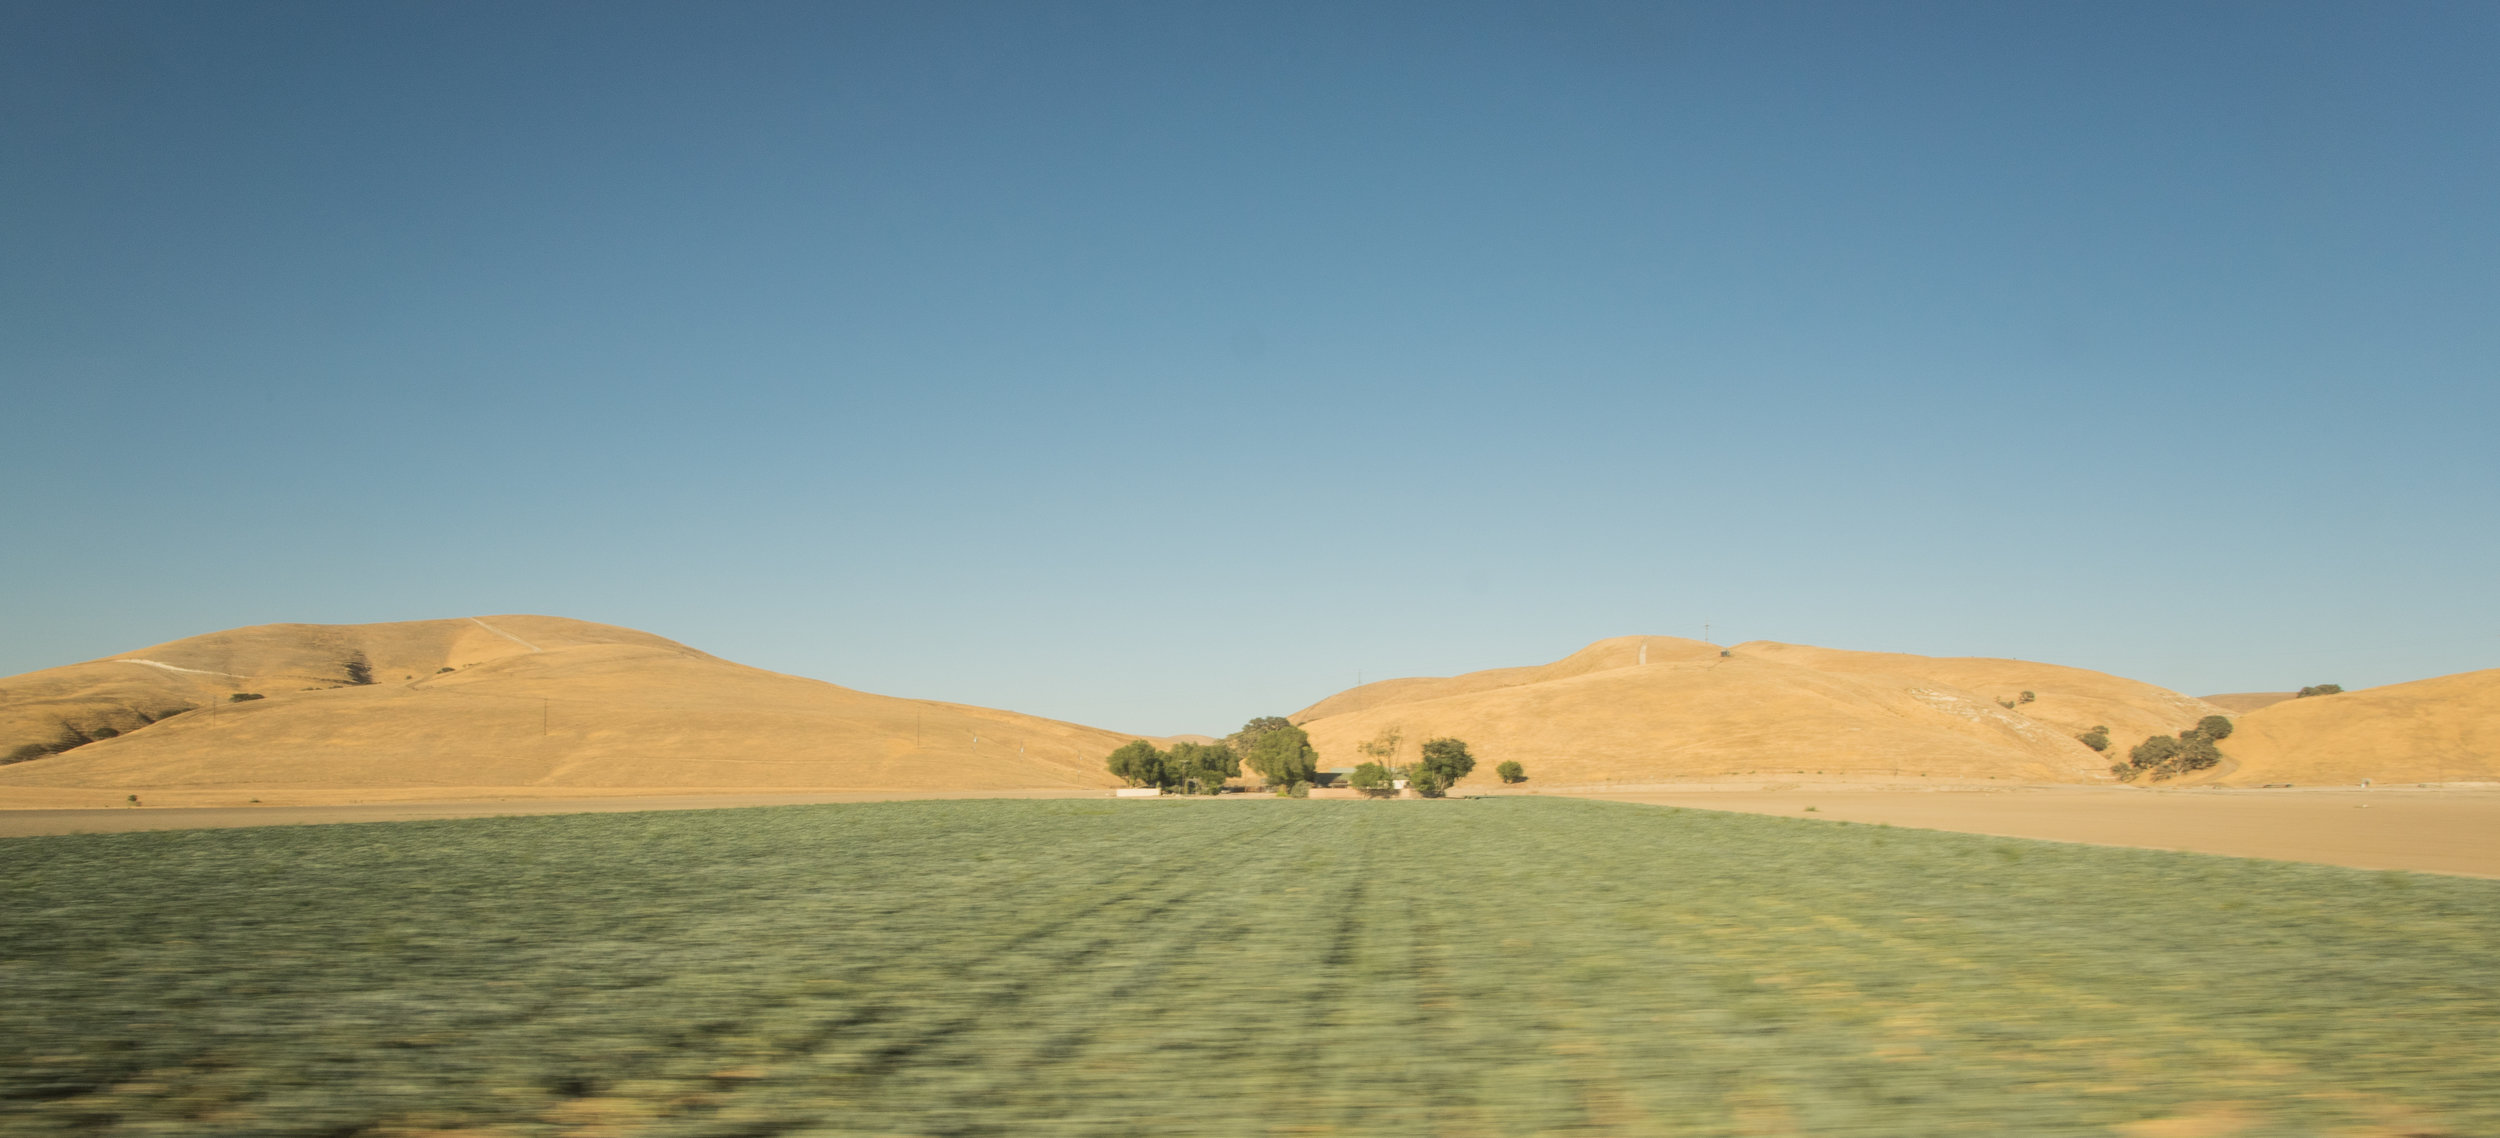 A series of photos have a recognizable motion blur across the bottom portion of the image, these were taken by mounting the camera to the inside of an observation car on a train ride from Los Angeles to New York via San Francisco.